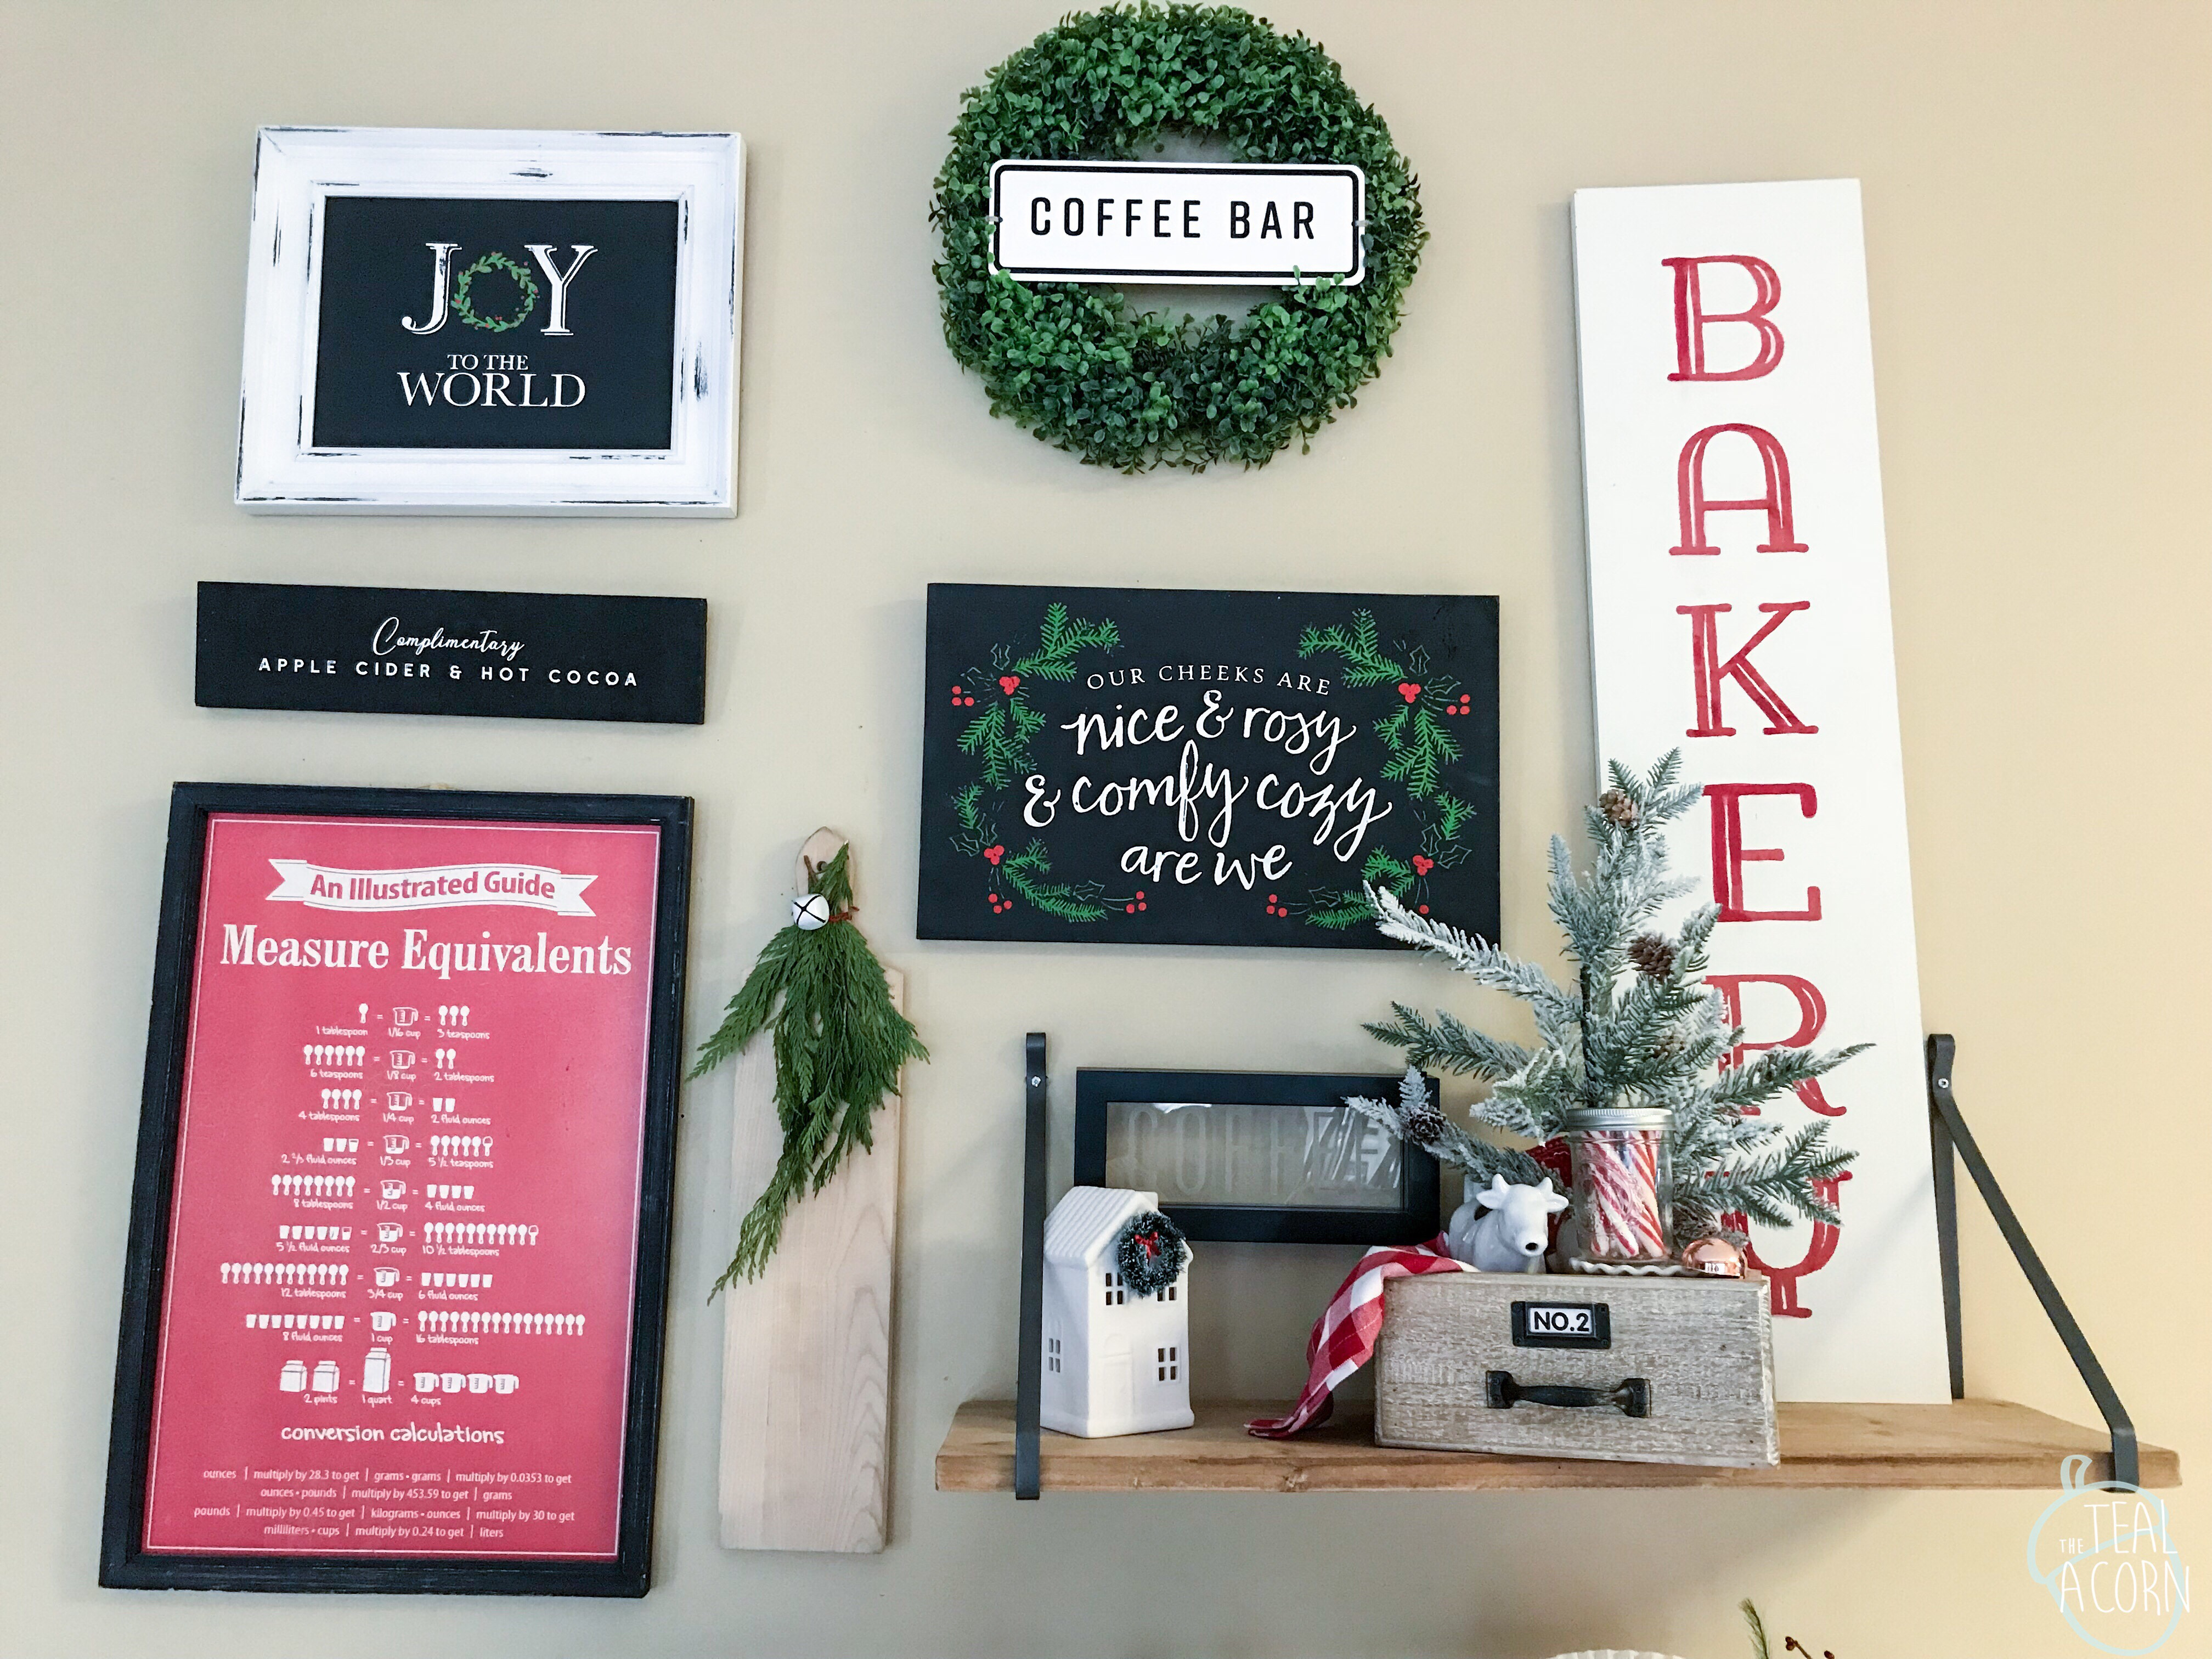 Christmas Gallery wall with Chalk Couture Joy to the world, bakery, vintage truck complimentary cocoa and cider, our cheeks are nice and rosy and comfy cozy are we transfers.